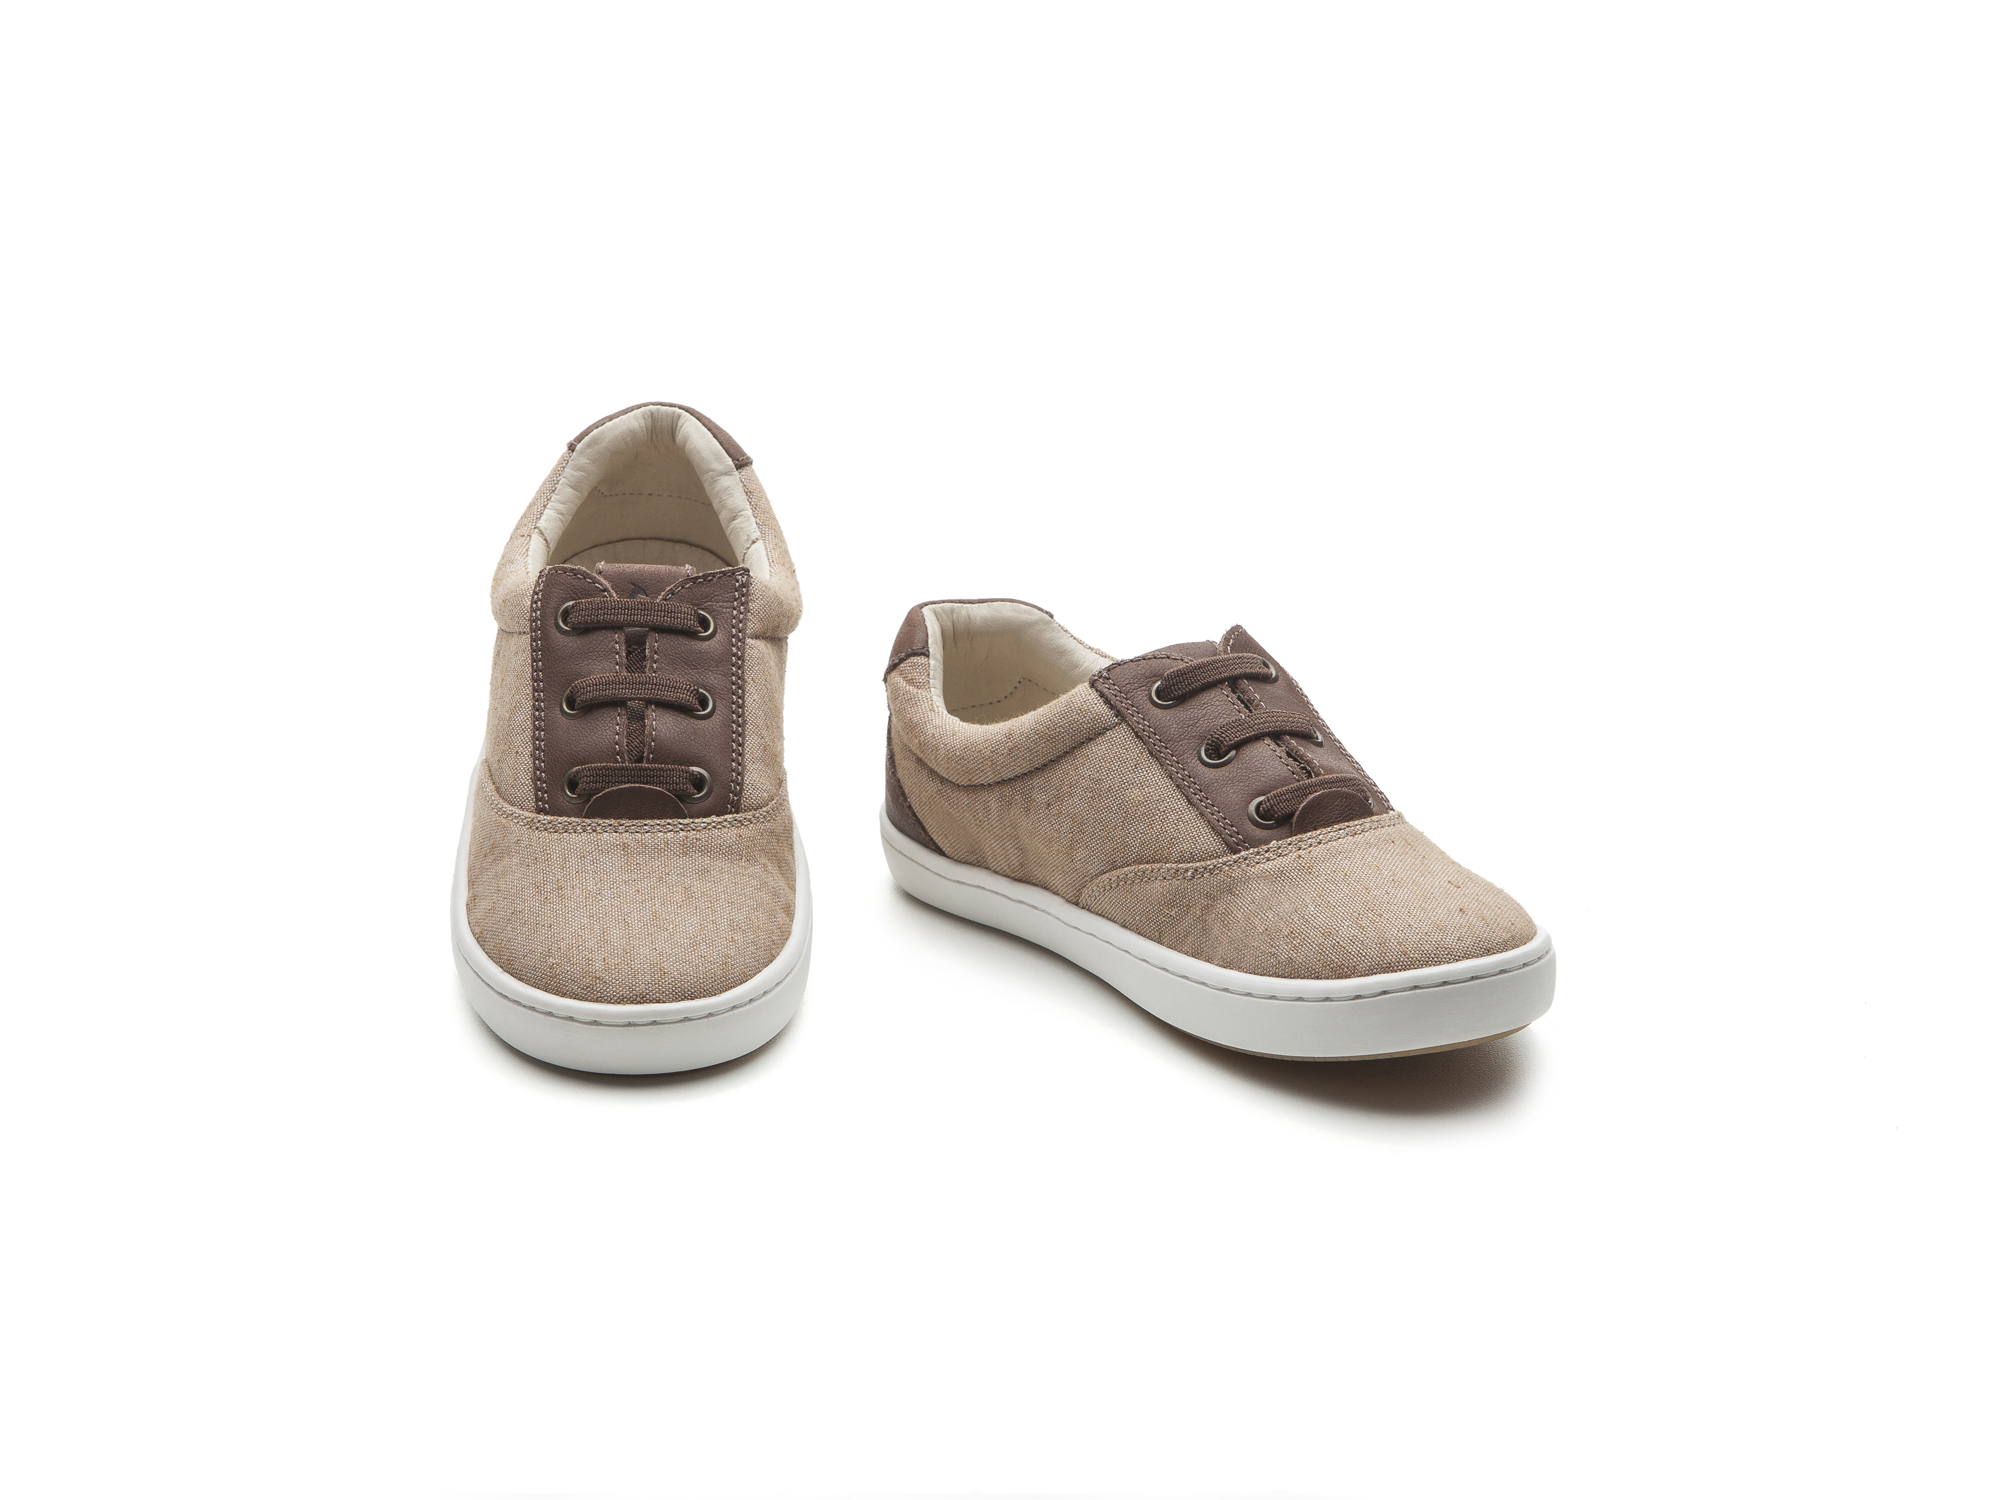 Tênis T Garb Kraft Canvas/ Old Brown Toddler 2 à 4 anos - 1